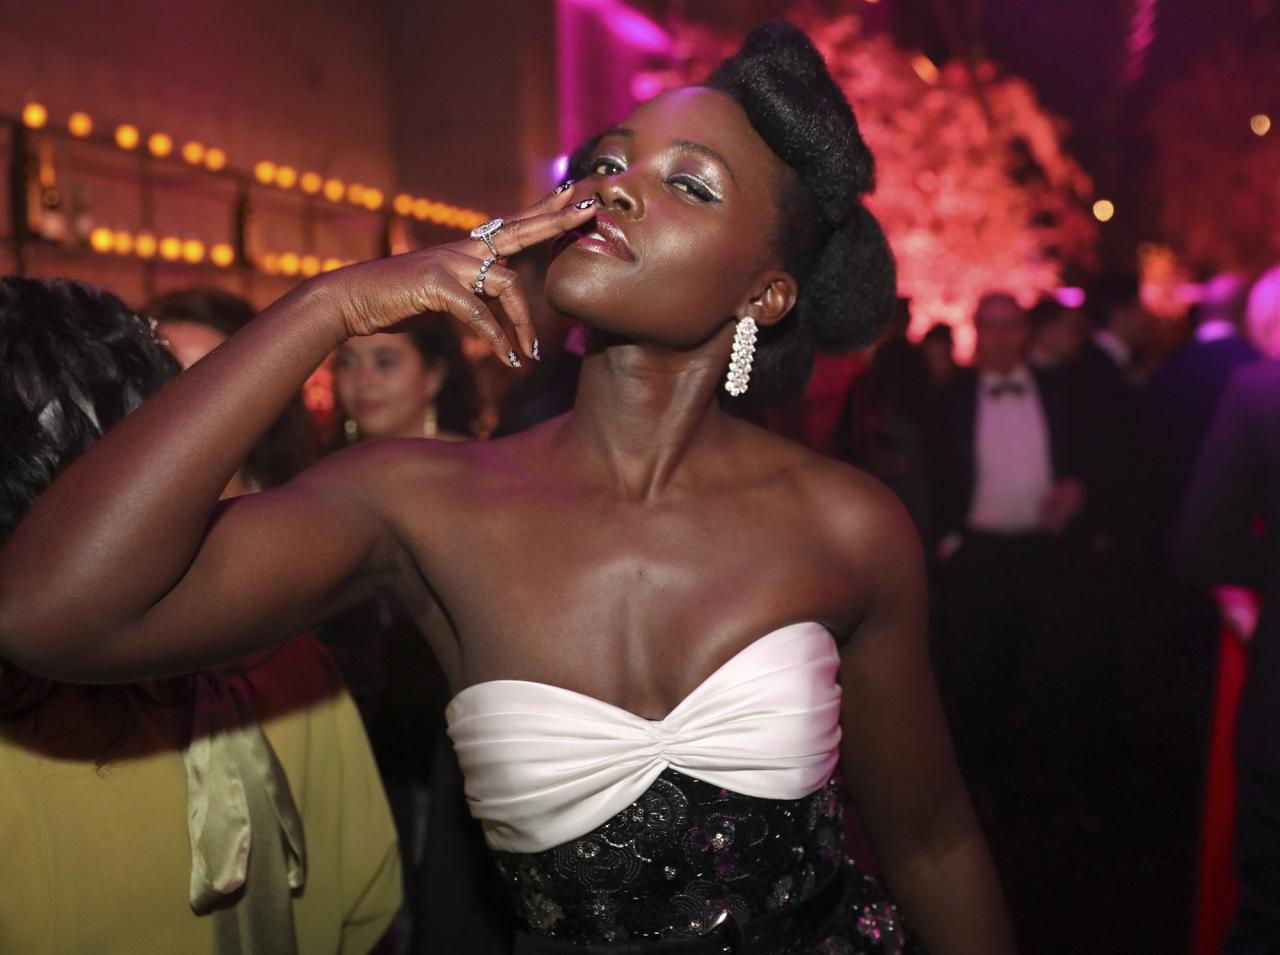 Lupita Nyong'o strikes a pose (and looks incredibly glam while she does it).